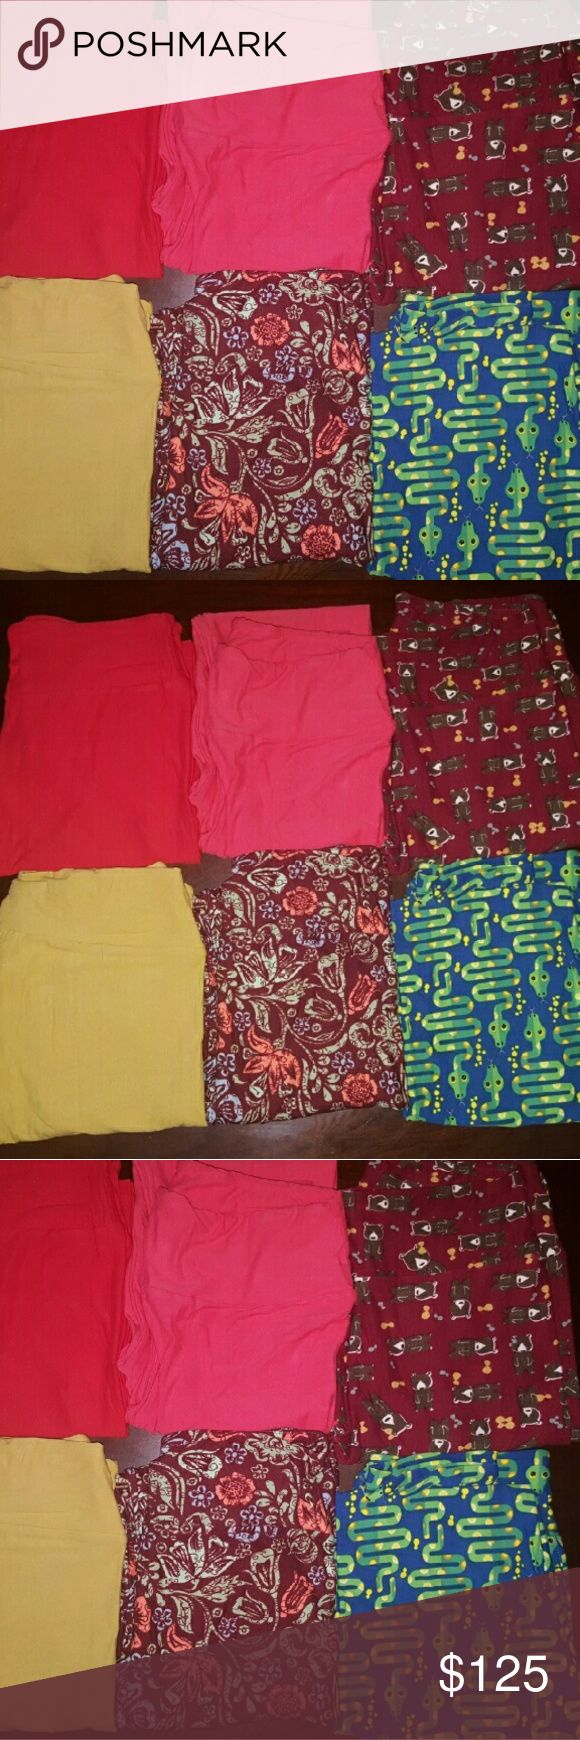 Lularoe Leggins Bundle of 6 One Size OS Lularoe One Size Bundle. 3 patters and 3 solids. 3 patters are floral, snakes, and bears. 3 solids are mustard yellow, watermelon pink, and red. Some of them are also listed individually. 6 leggings for the price of 5. Serious buyers only! Price is firm. All brand new and never worn/tried on. LuLaRoe Pants Leggings